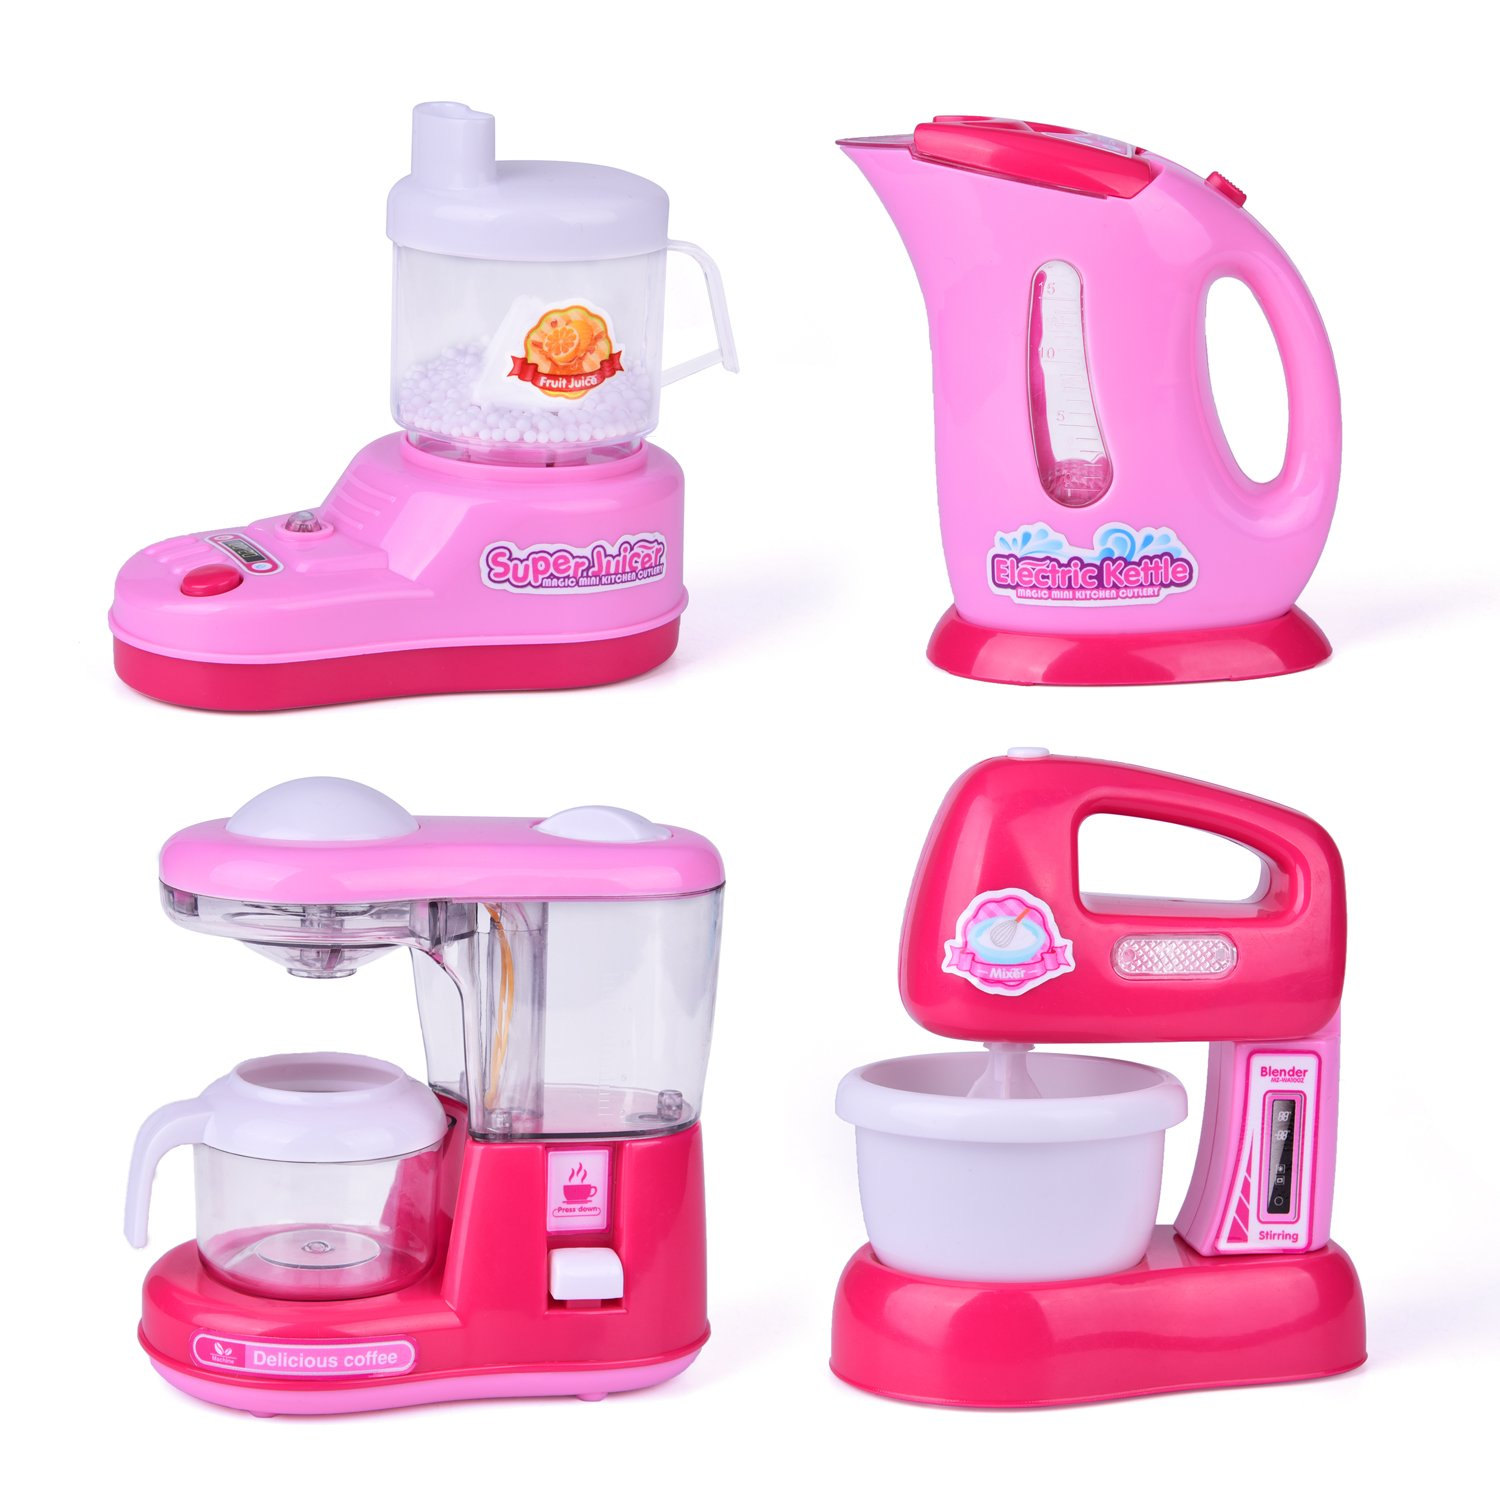 Fun Little Toys Assorted Kitchen Appliance For Jacquelle Carousel Beauty Blender Girls Coffee Maker Play Accessories Kids Games